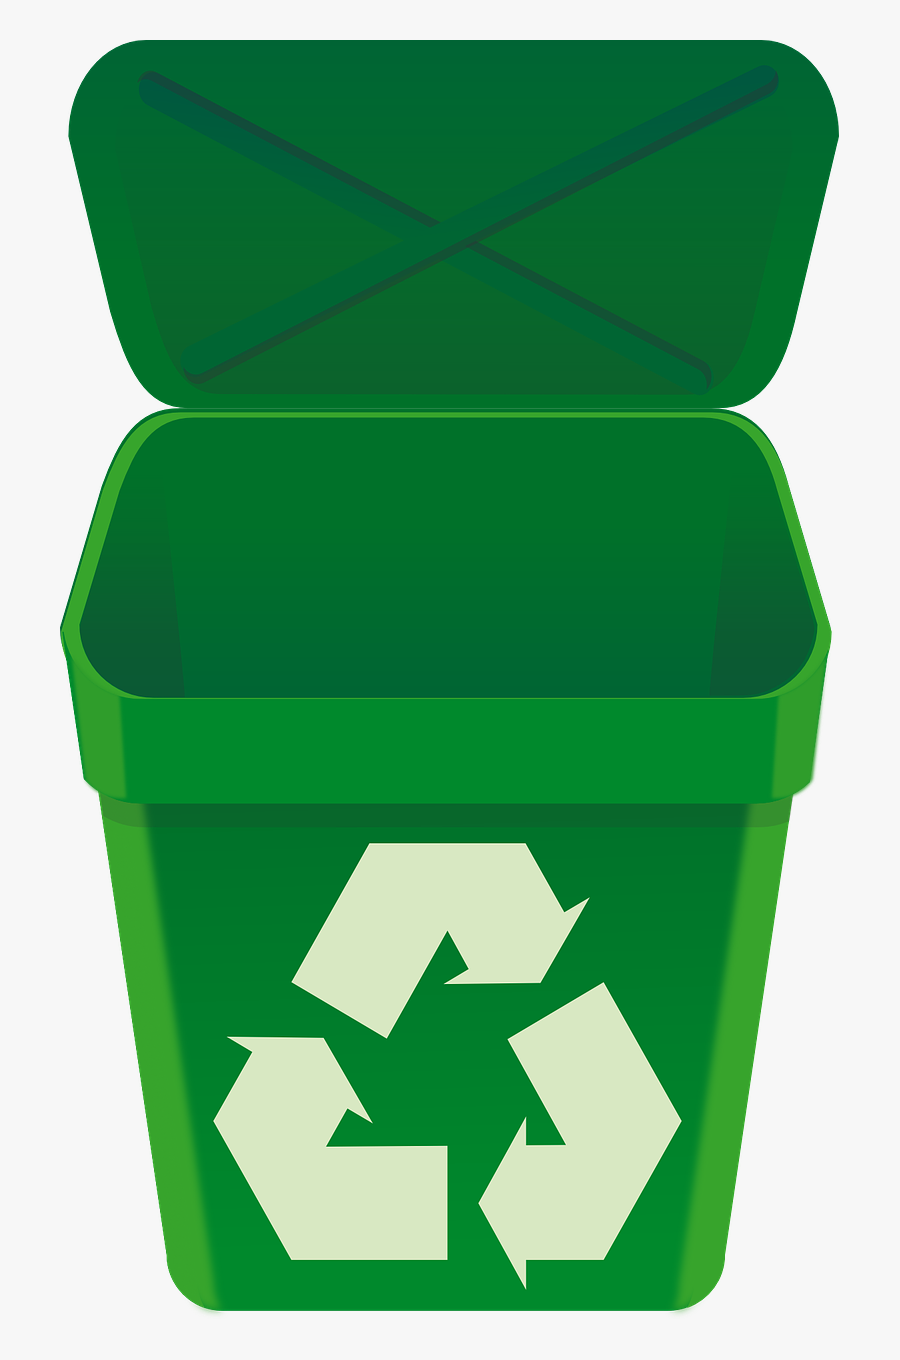 Open Trash Can Png.